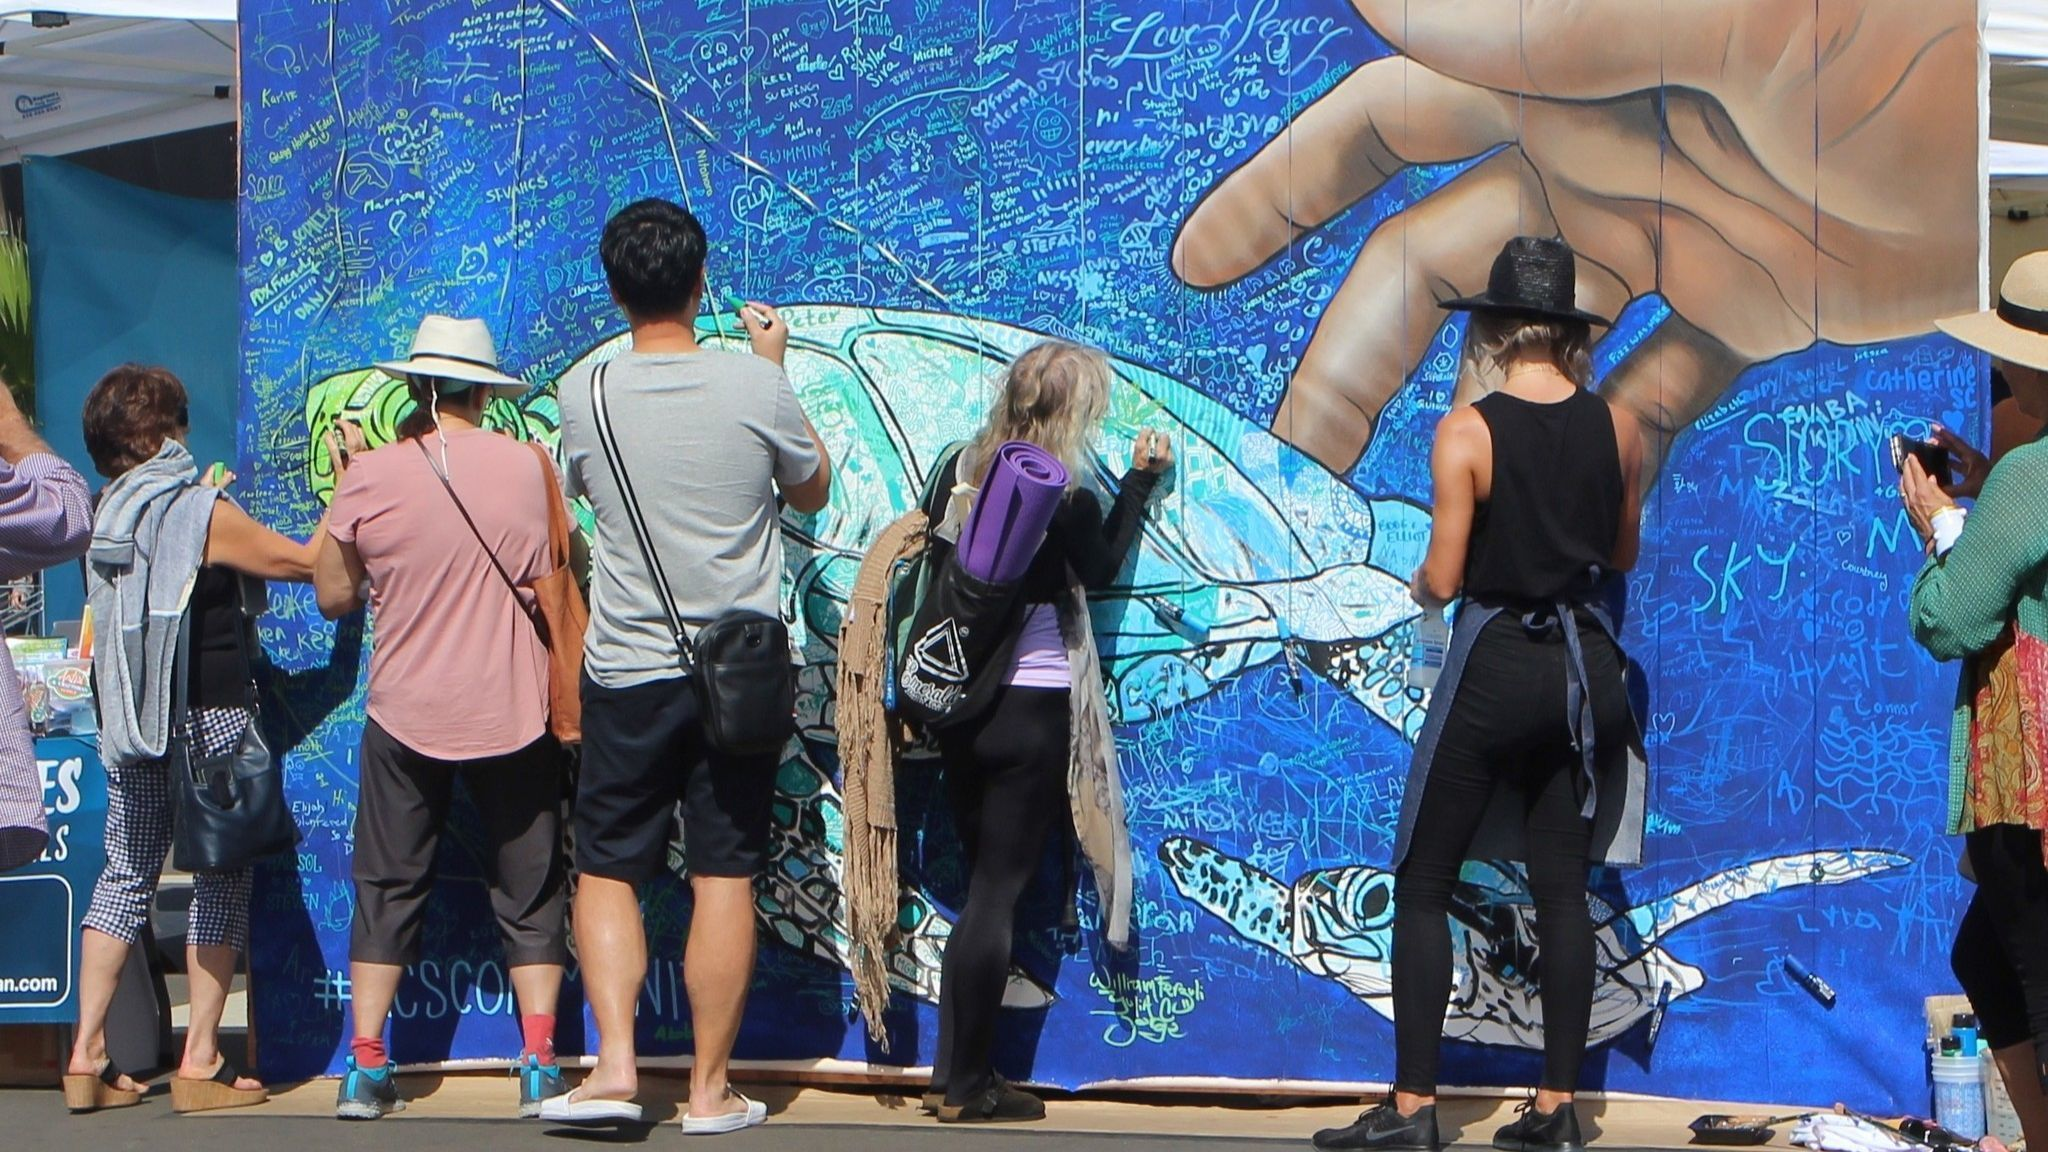 San Diego muralist Carly Ealey, right, leads members of the public in painting an interactive mural.